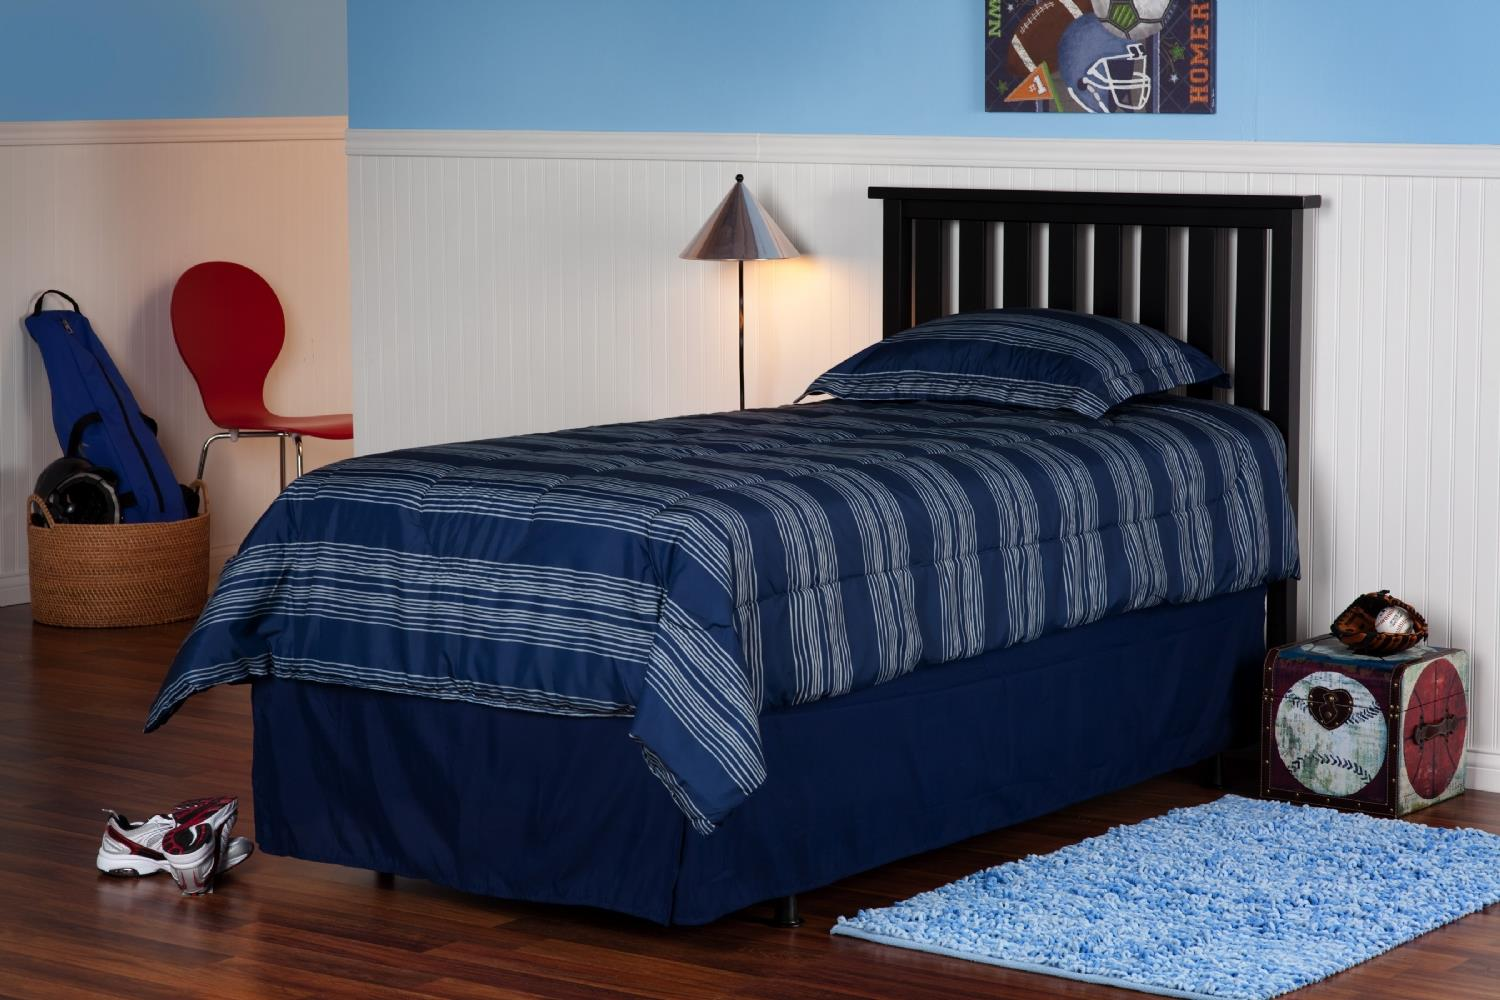 Fashion Bed Group Belmont Full/Queen Headboard - Item Number: 51B529